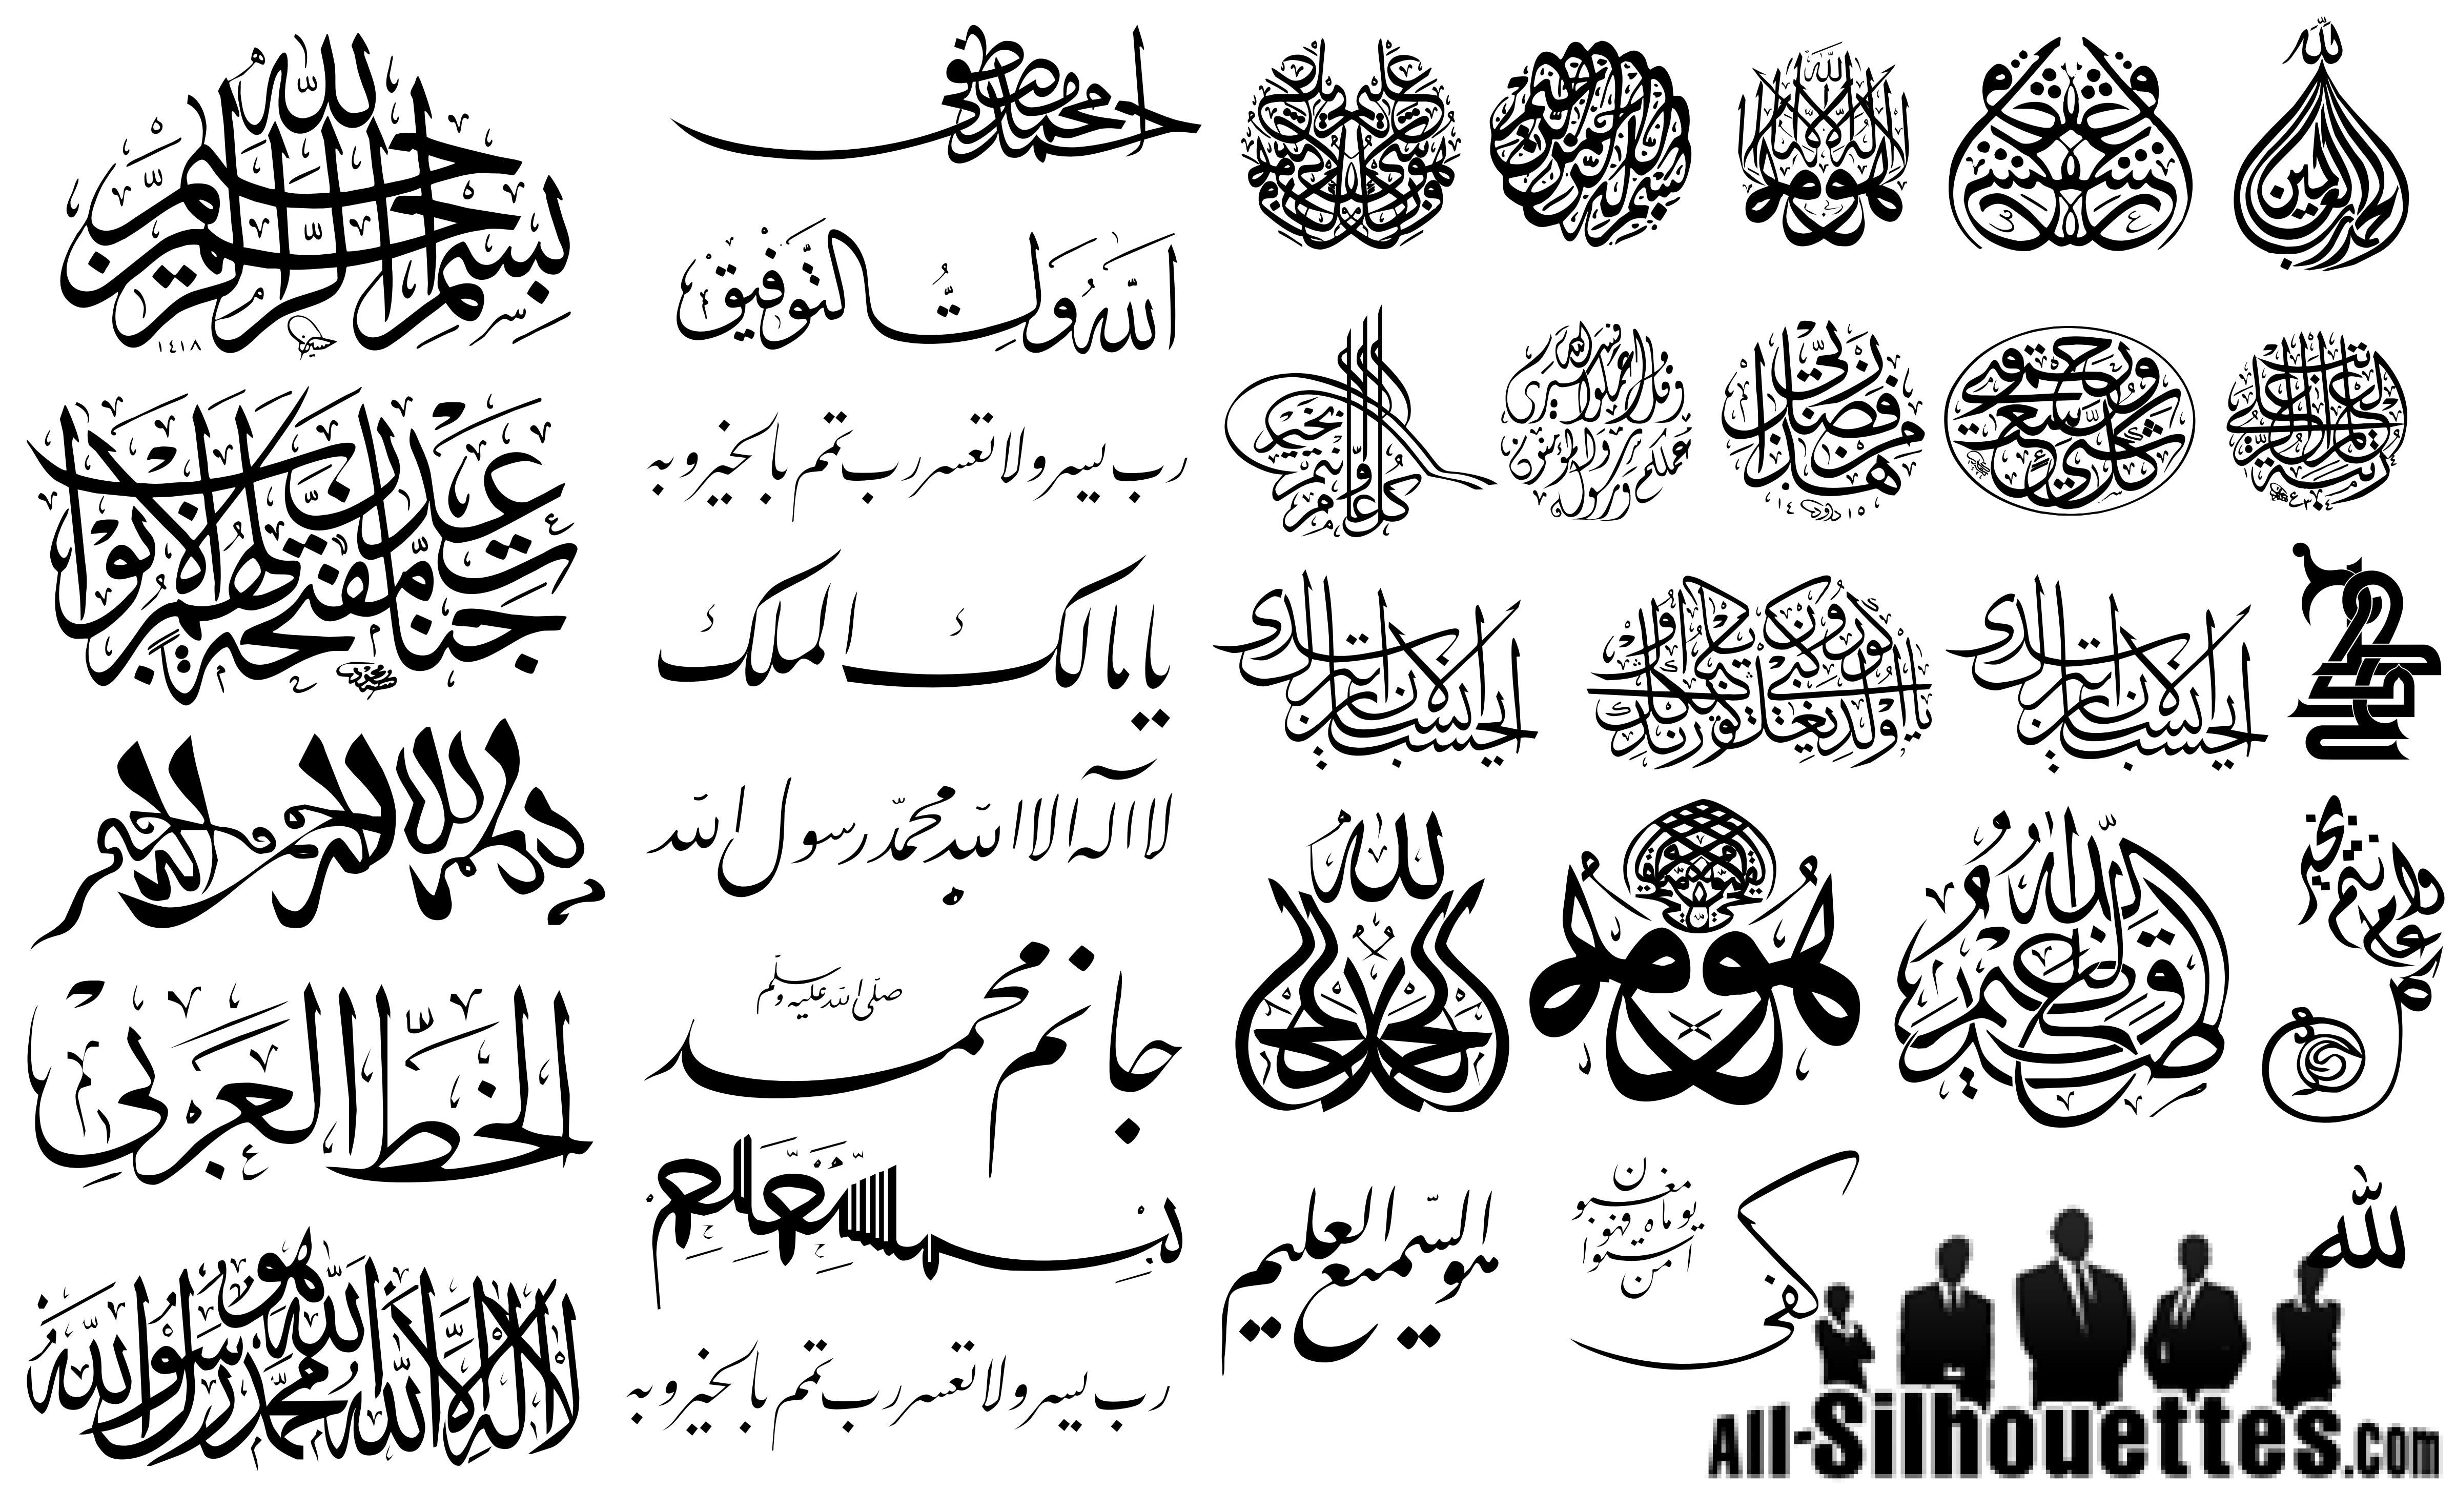 Islamic Calligraphy Download Vector Calligraphy, Islamic art